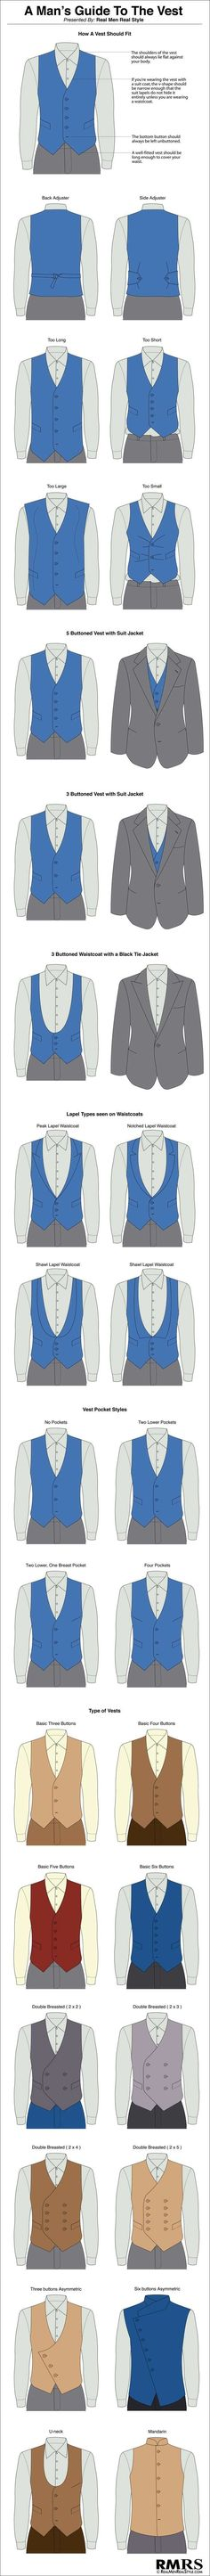 A man's guide to wearing vests